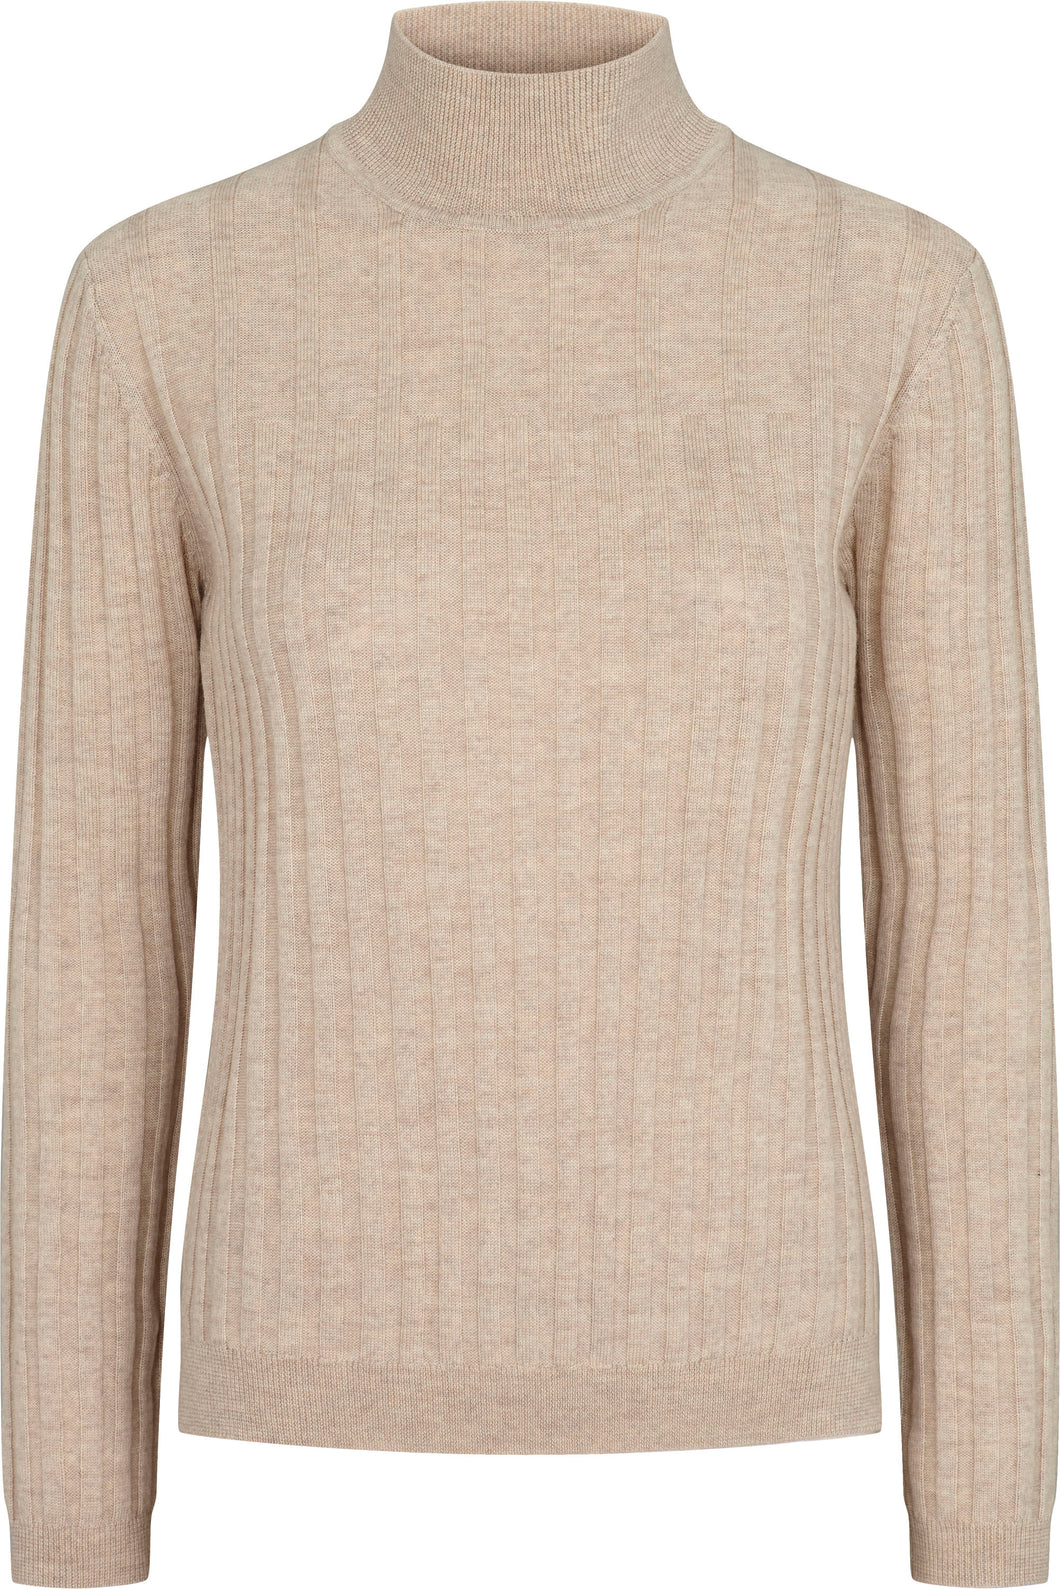 Kilani Turtleneck